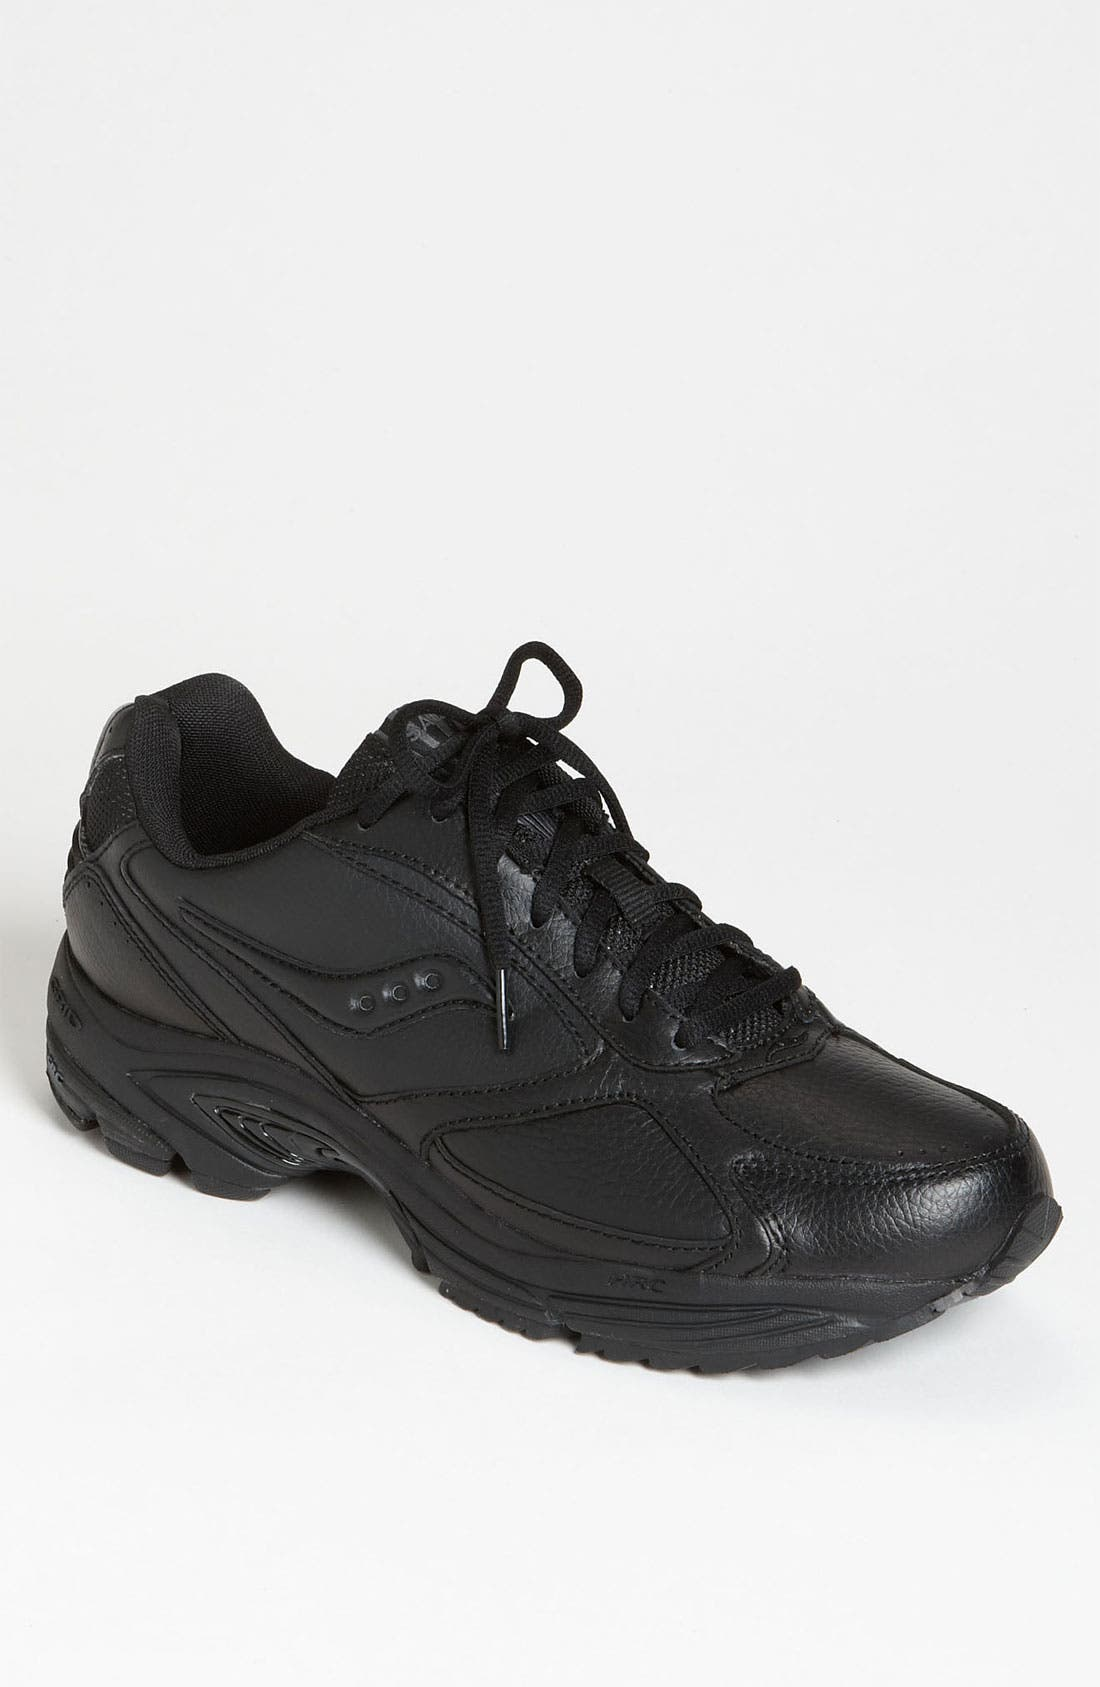 Alternate Image 1 Selected - Saucony 'Grid Omni' Walking Shoe (Men) (Online Only)